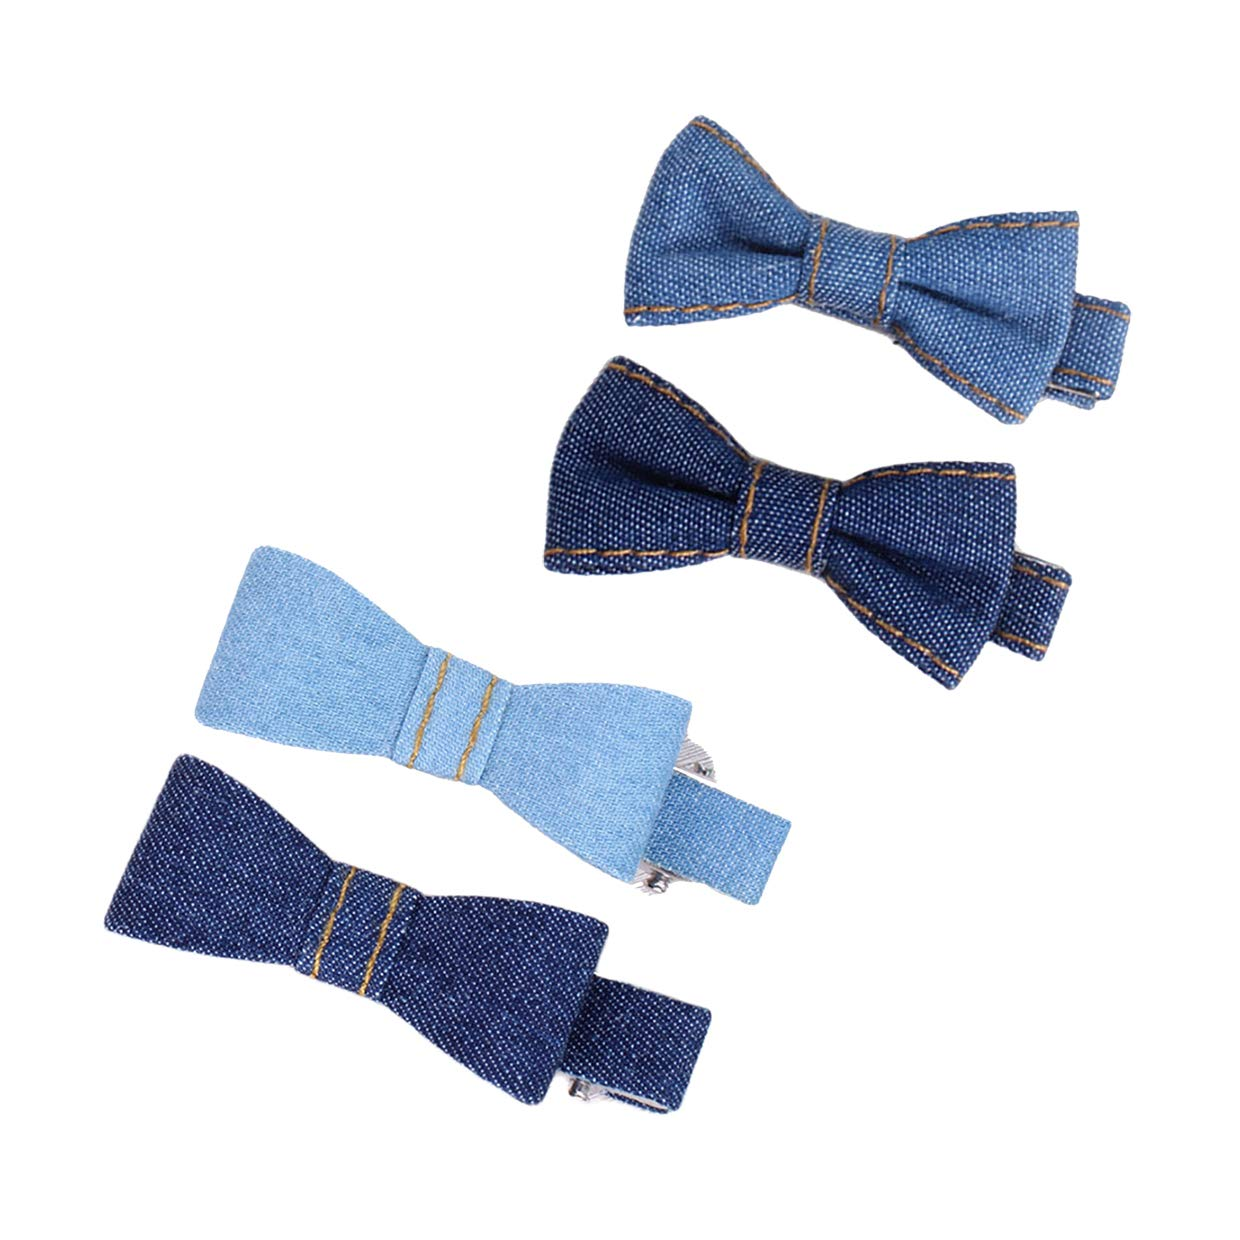 Baby Denim HairClips Bow Blue Jeans with Tiny Hair BowKnot Girls Hairpins JW021 (4 Pcs-Set E)